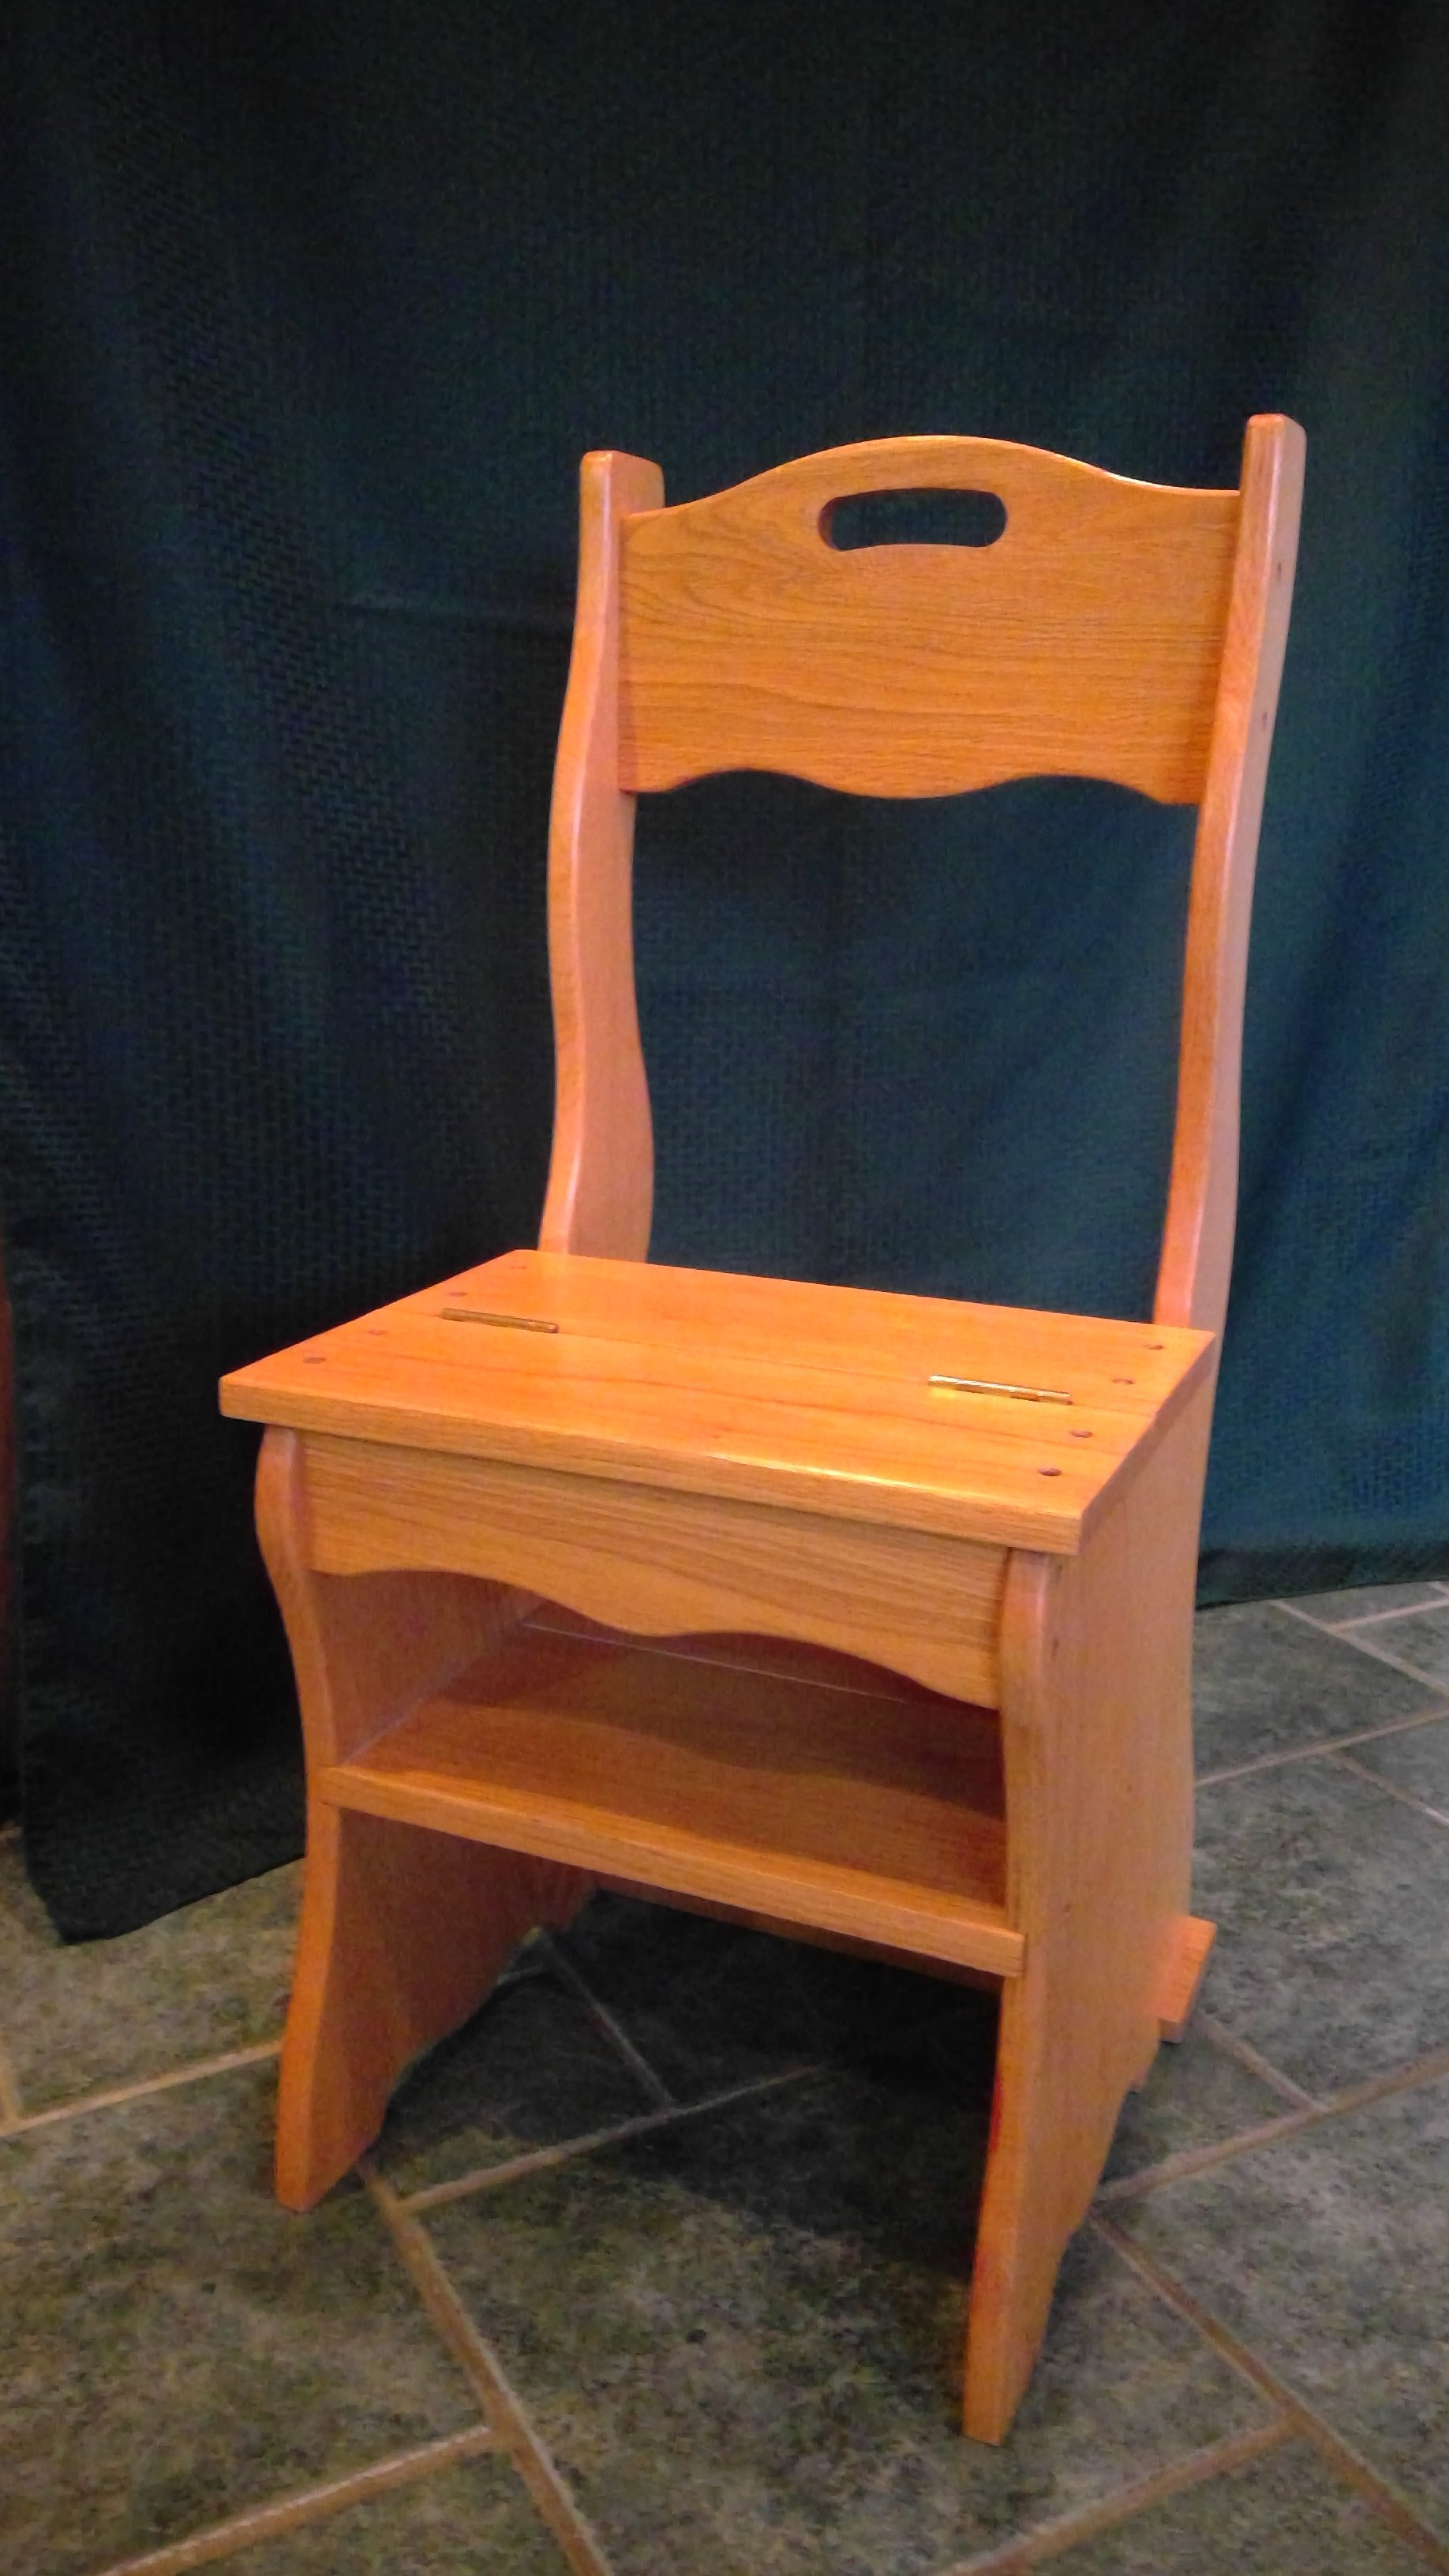 by furniture cafe library caf chairs chevy en product chase museum b chair from garden